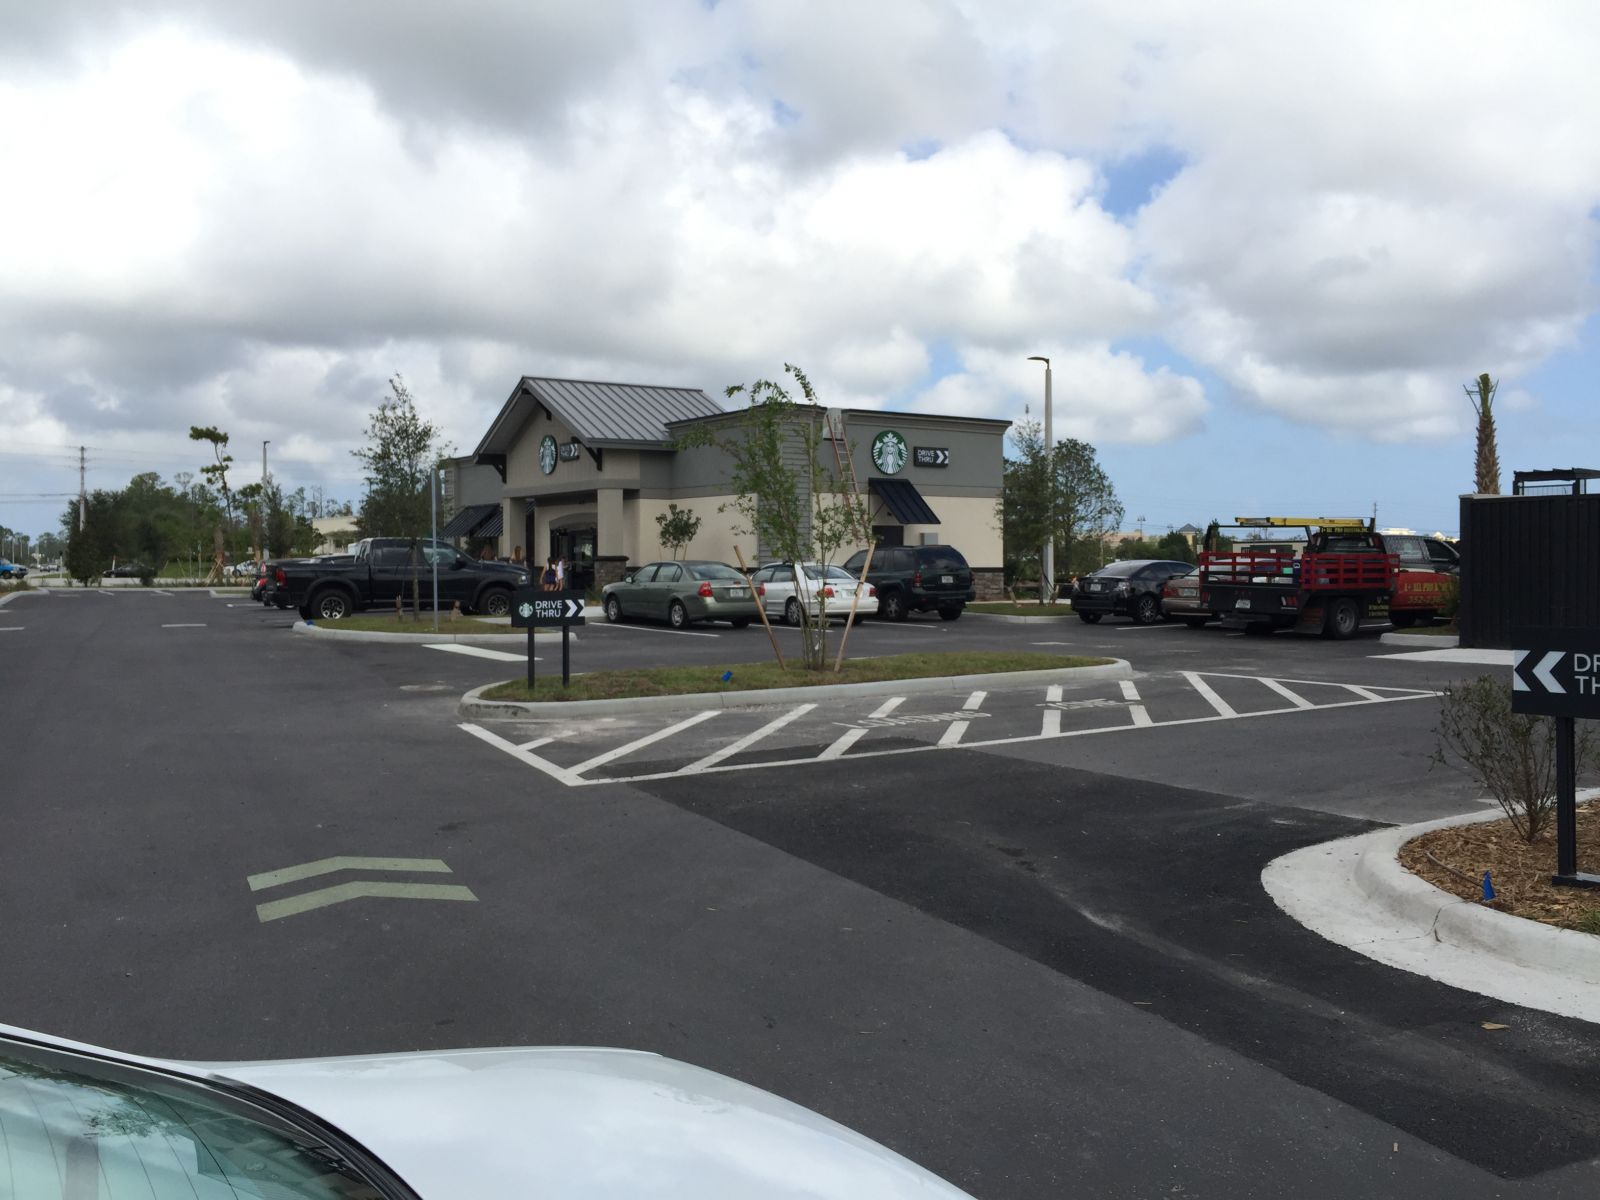 Starbucks at Shoppes of Palm Coast